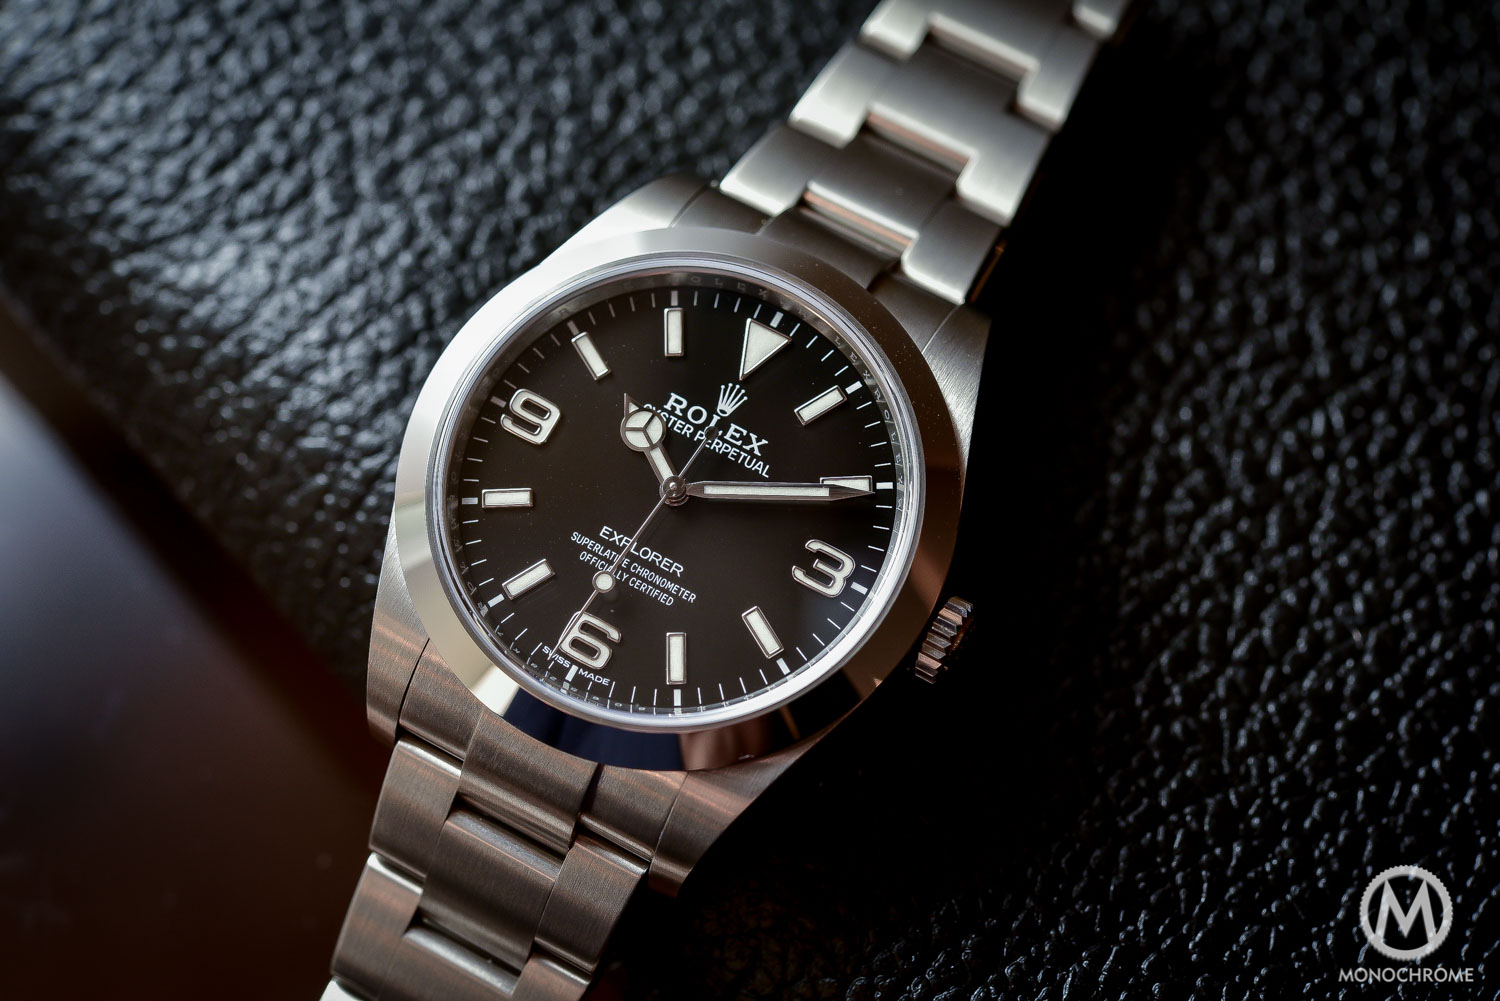 Rolex Explorer 214270 Baselworld 2016 - Long hands - 7